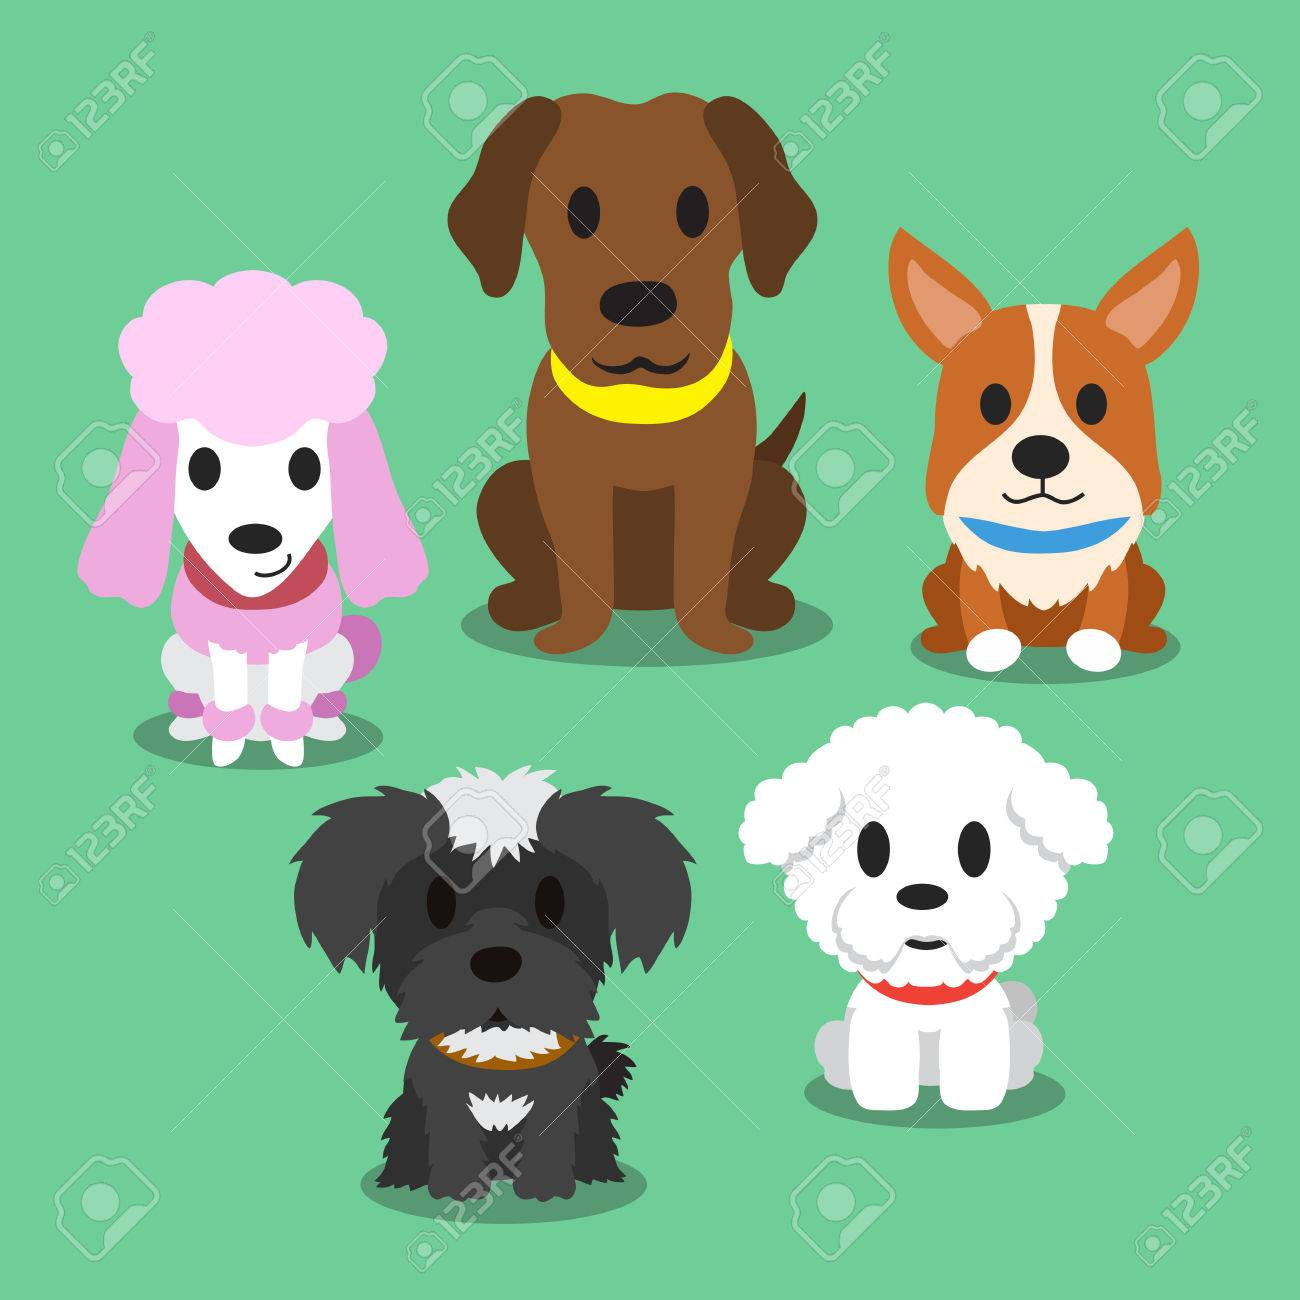 Image of: Names Cartoon Dogs Standing Stock Vector 50264110 123rfcom Cartoon Dogs Standing Royalty Free Cliparts Vectors And Stock